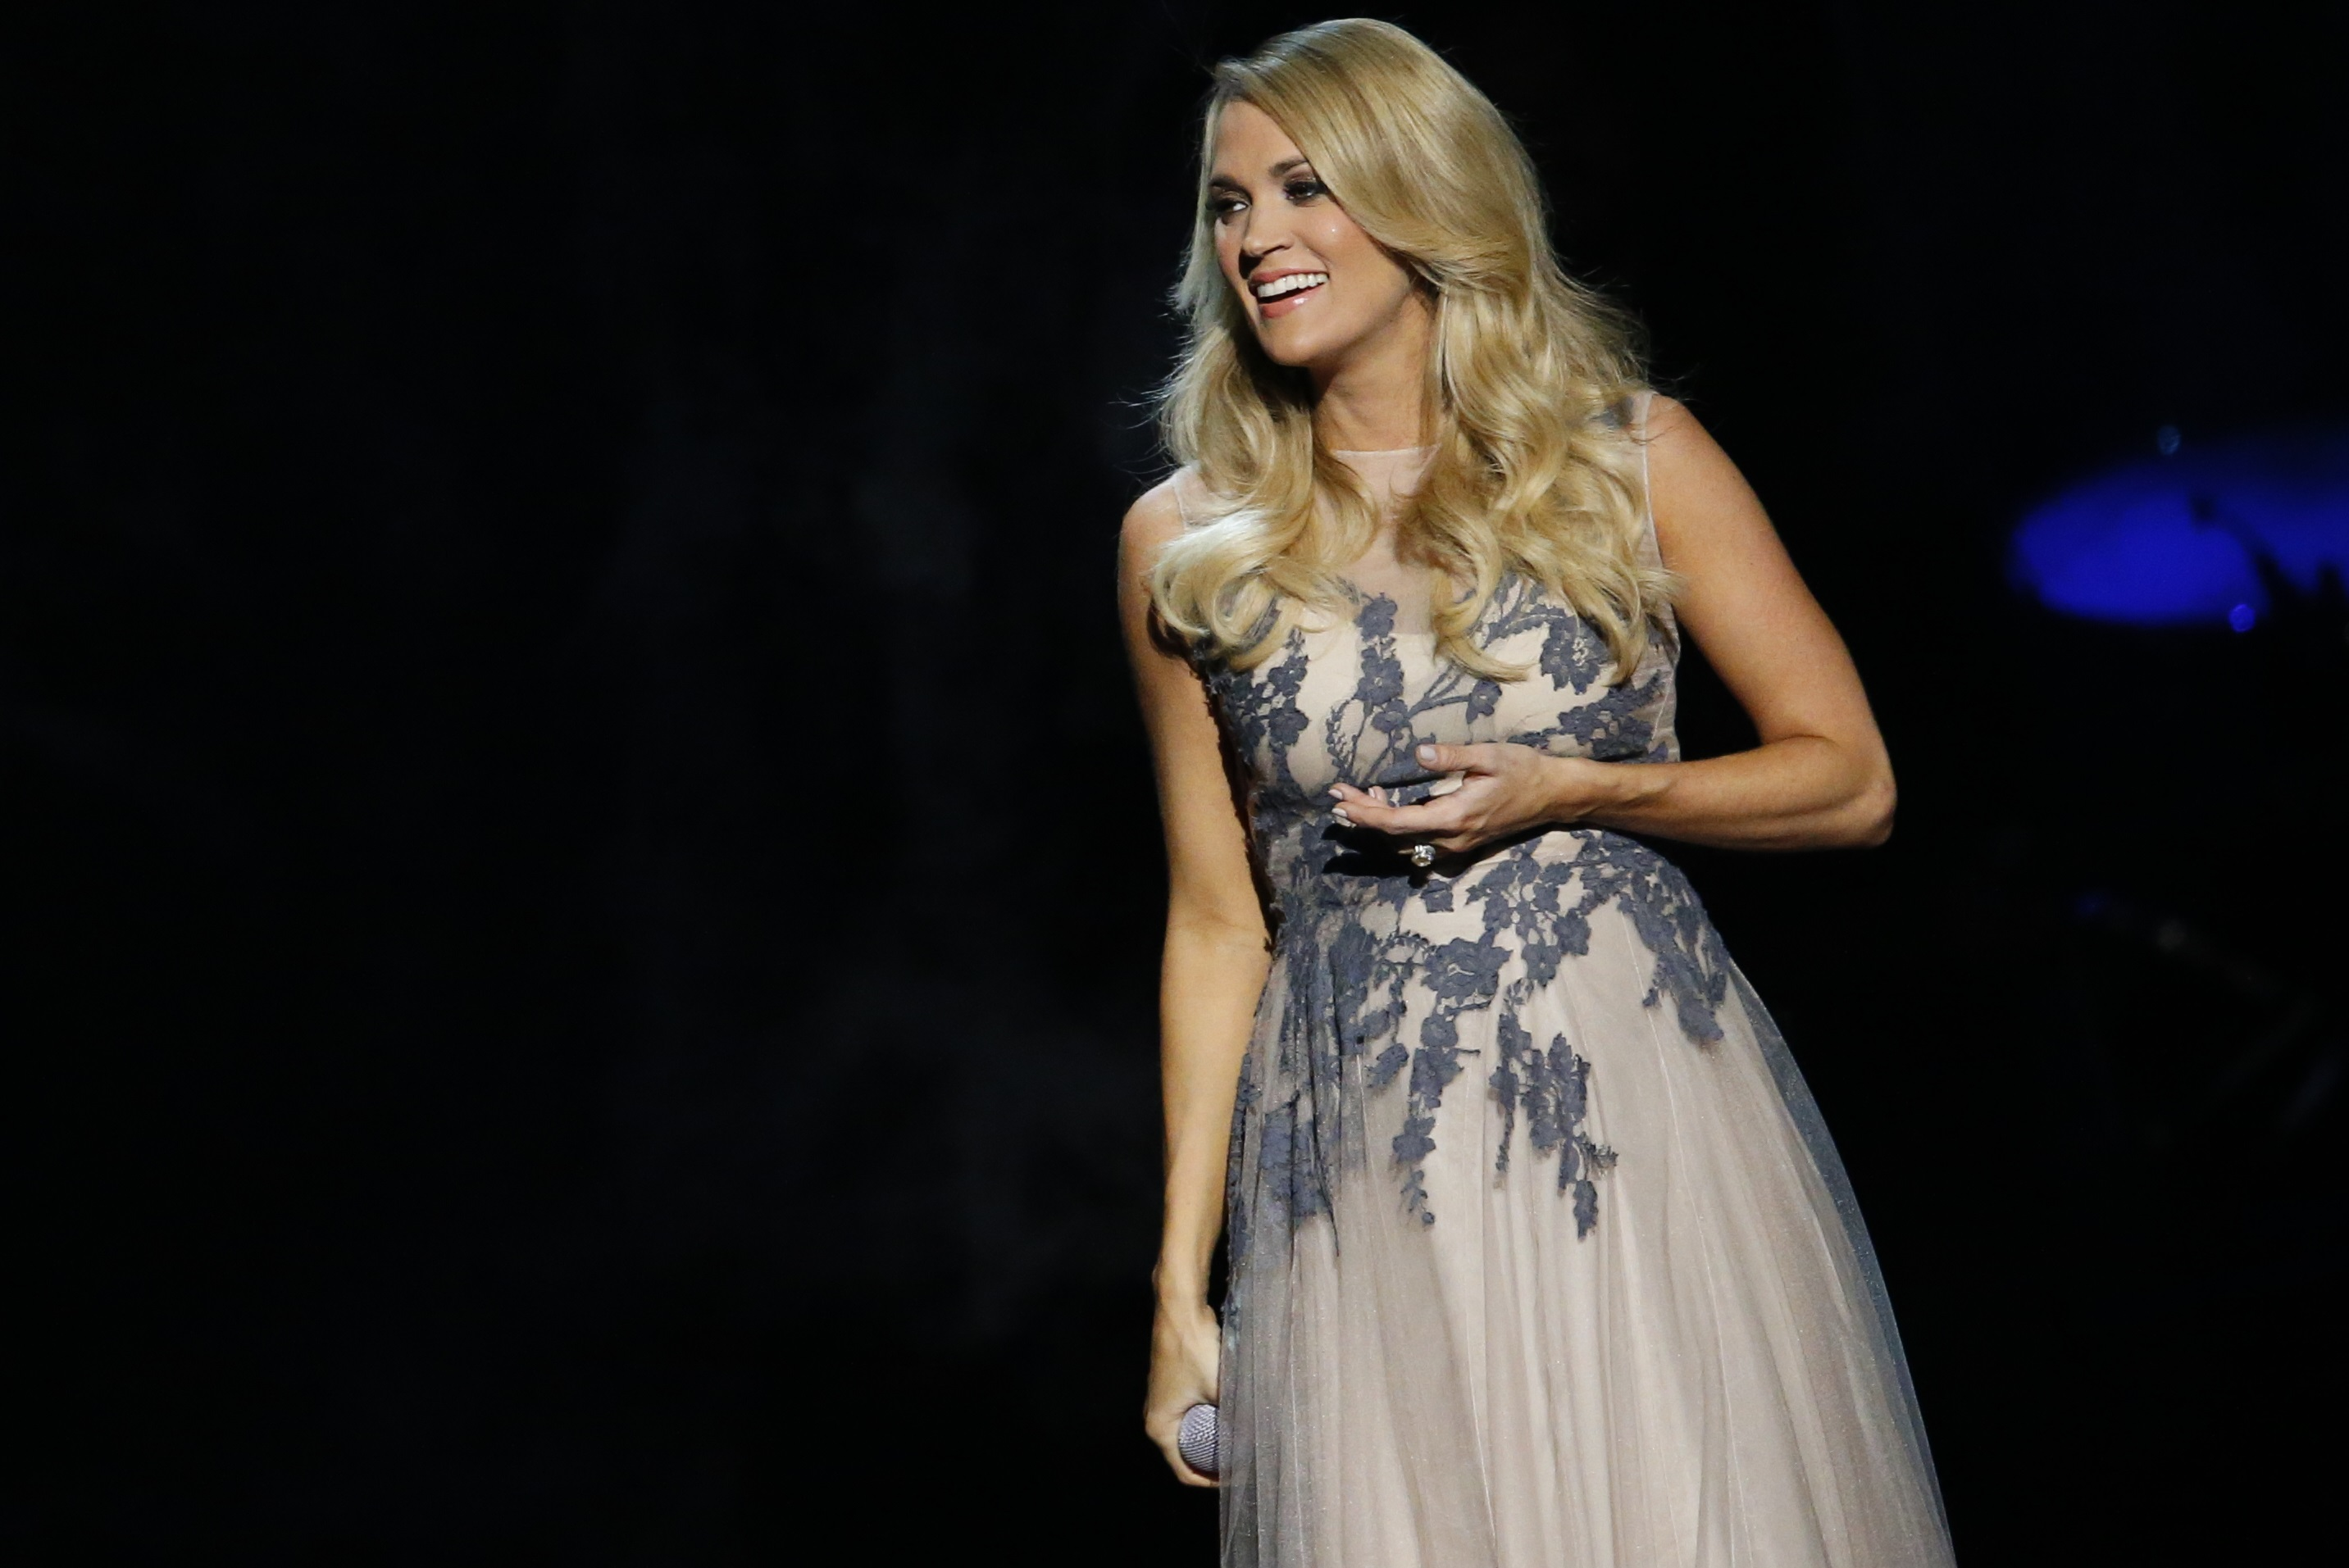 Carrie Underwood at the 48th Annual CMA Awards on November 5, 2014; Photo courtesy Country Music Association